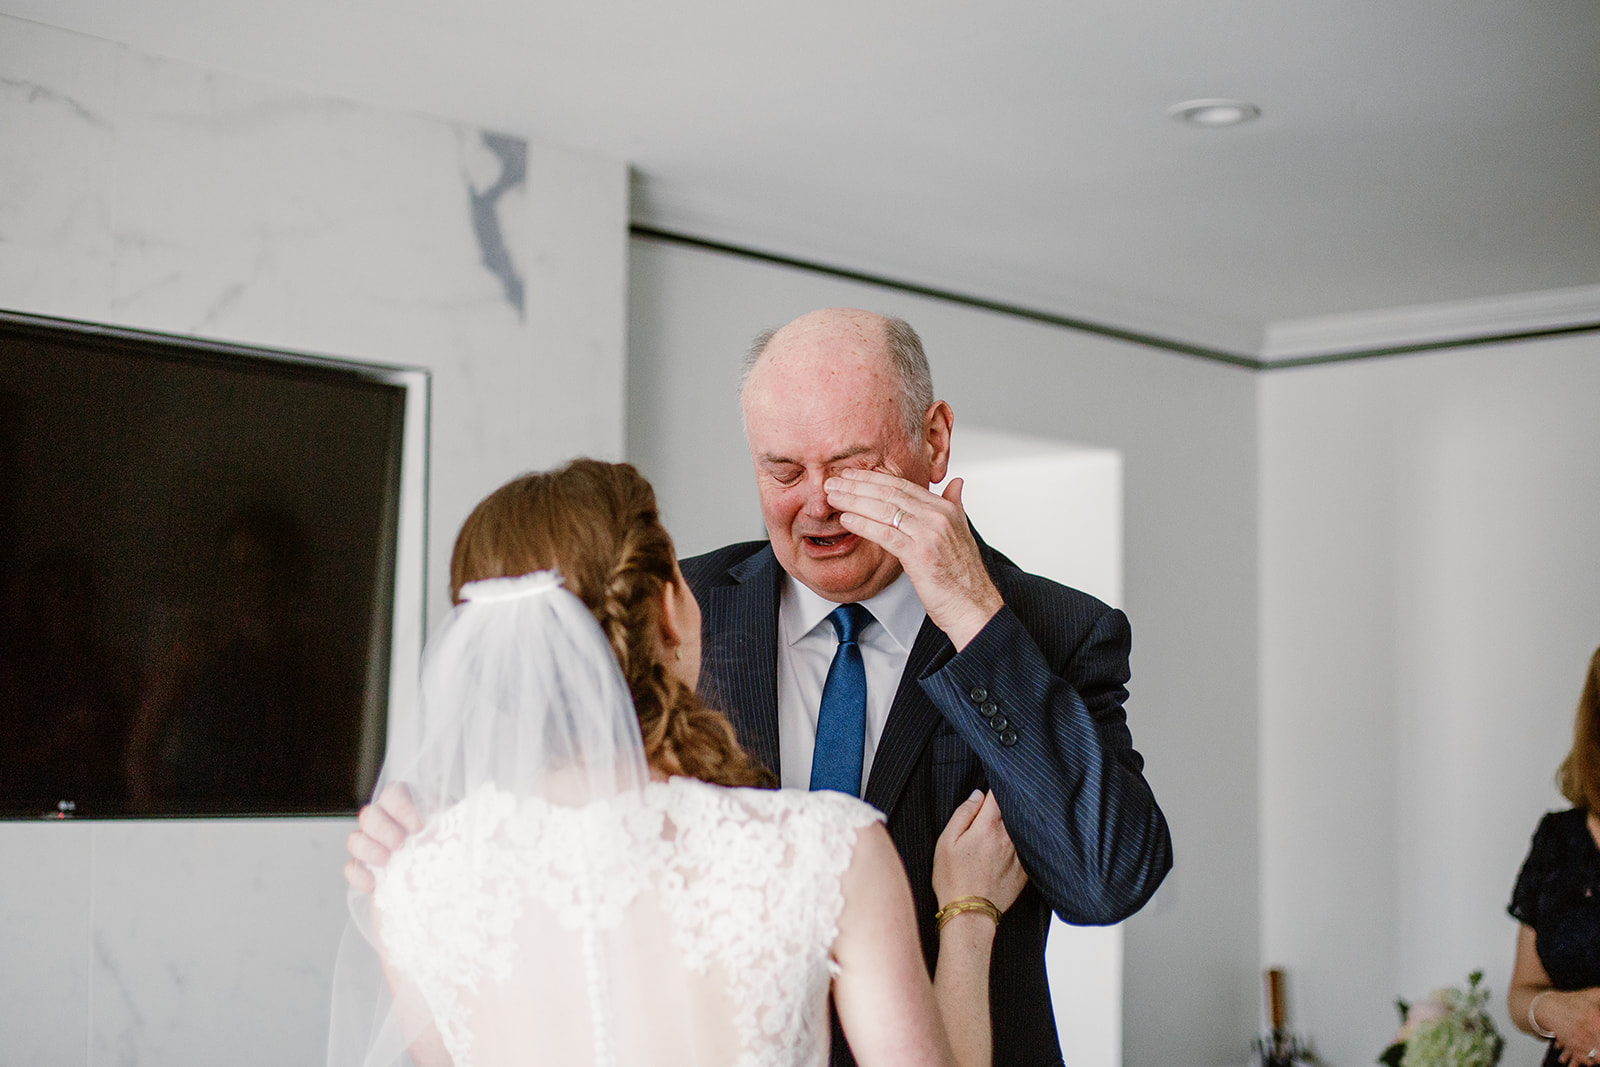 SarahMattozziPhotography-CapitolHillWedding-GettingReady-32.jpg